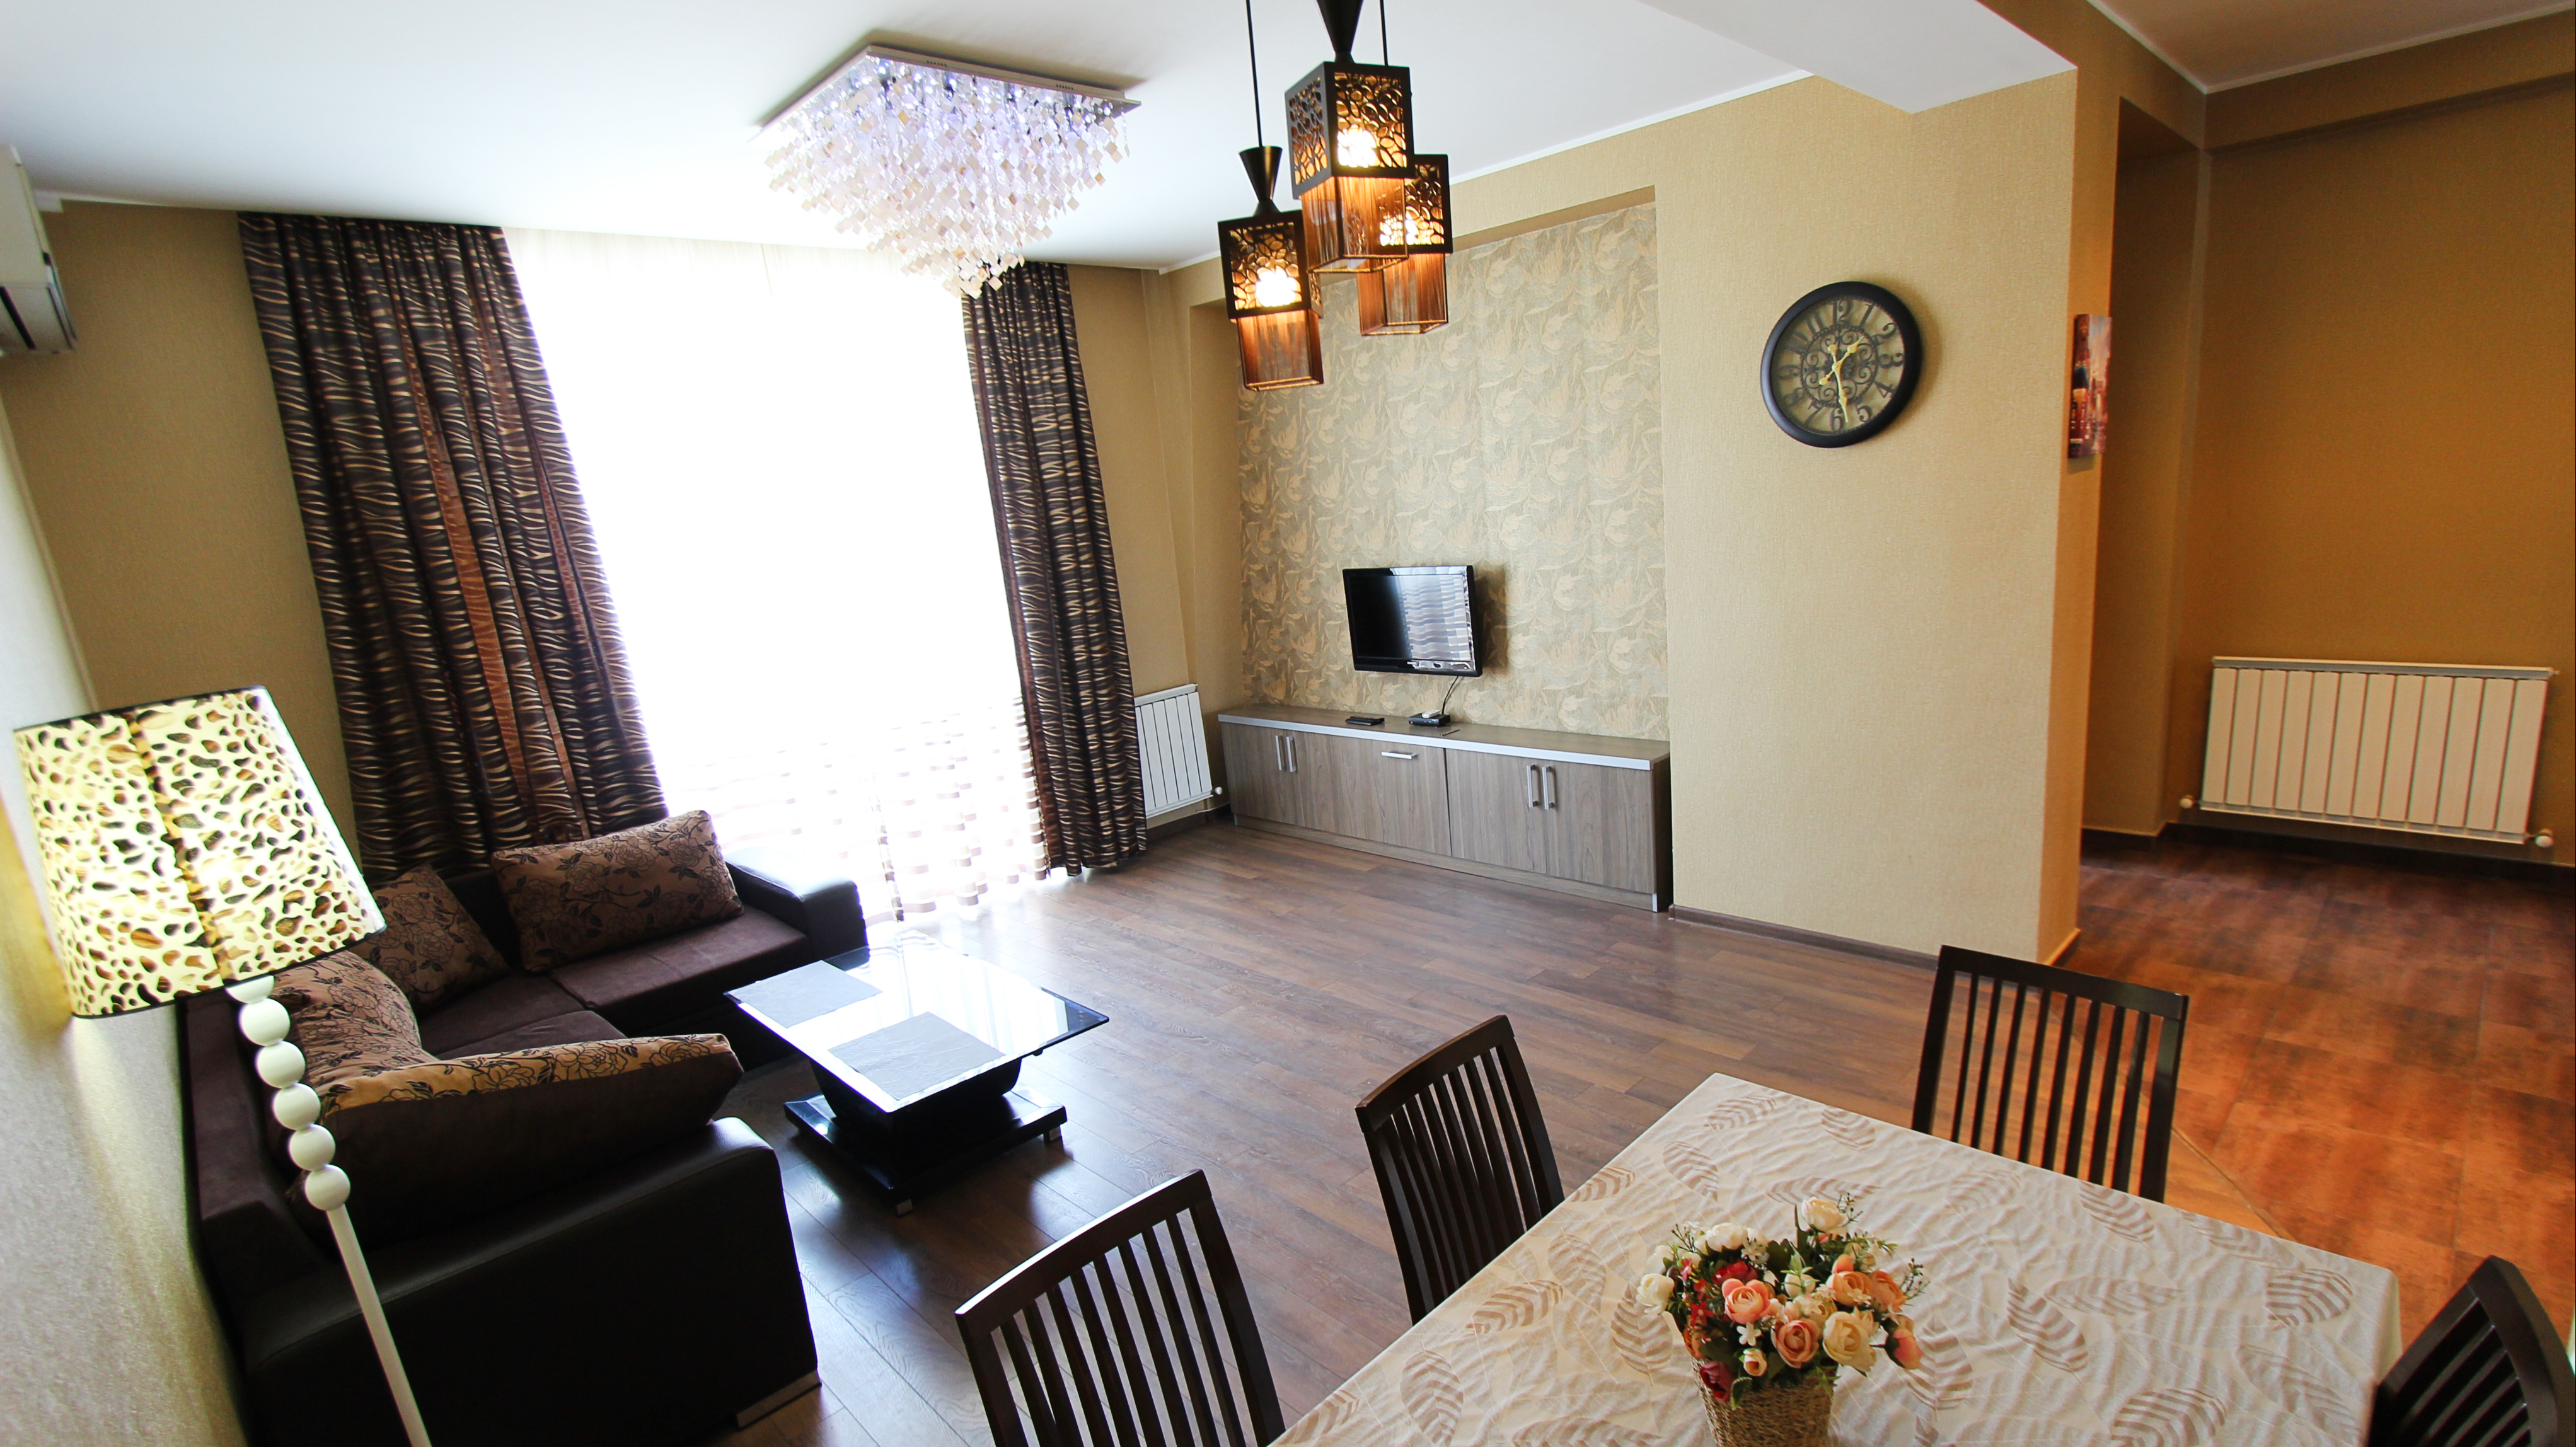 """3-Room Apartment For Rent on Tsintsadze St, in """"Axis Palace I"""""""